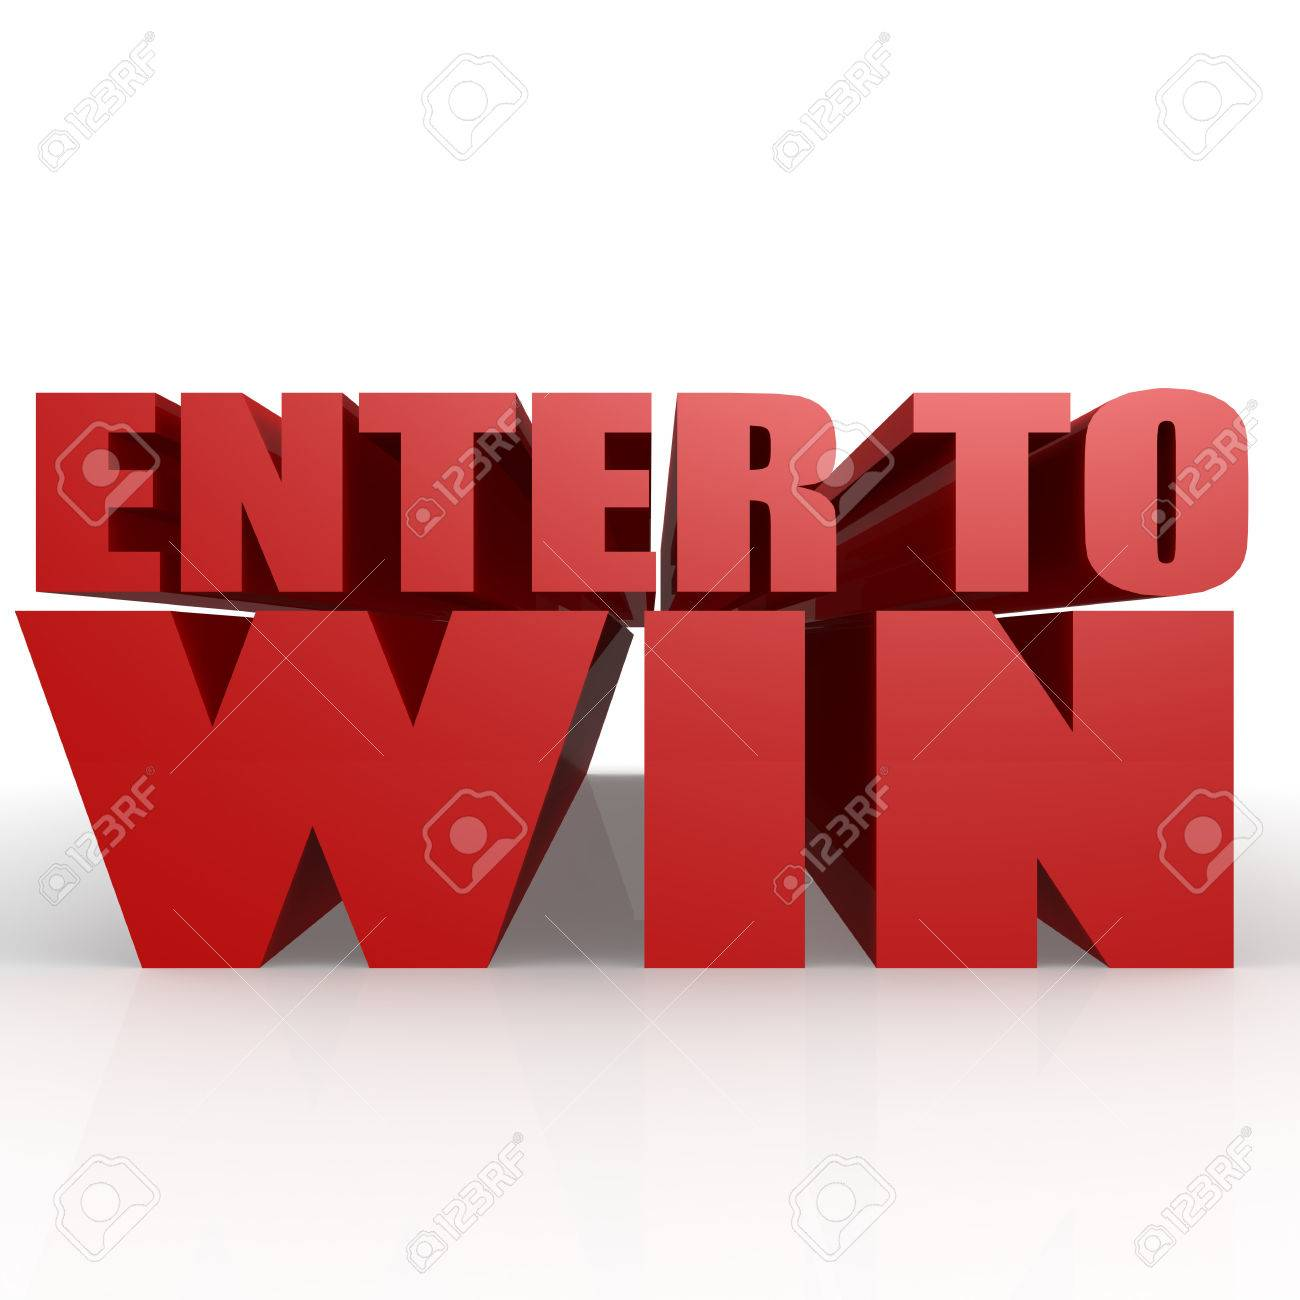 Enter to win image with hi-res rendered artwork that could be used for any graphic design. - 44877307